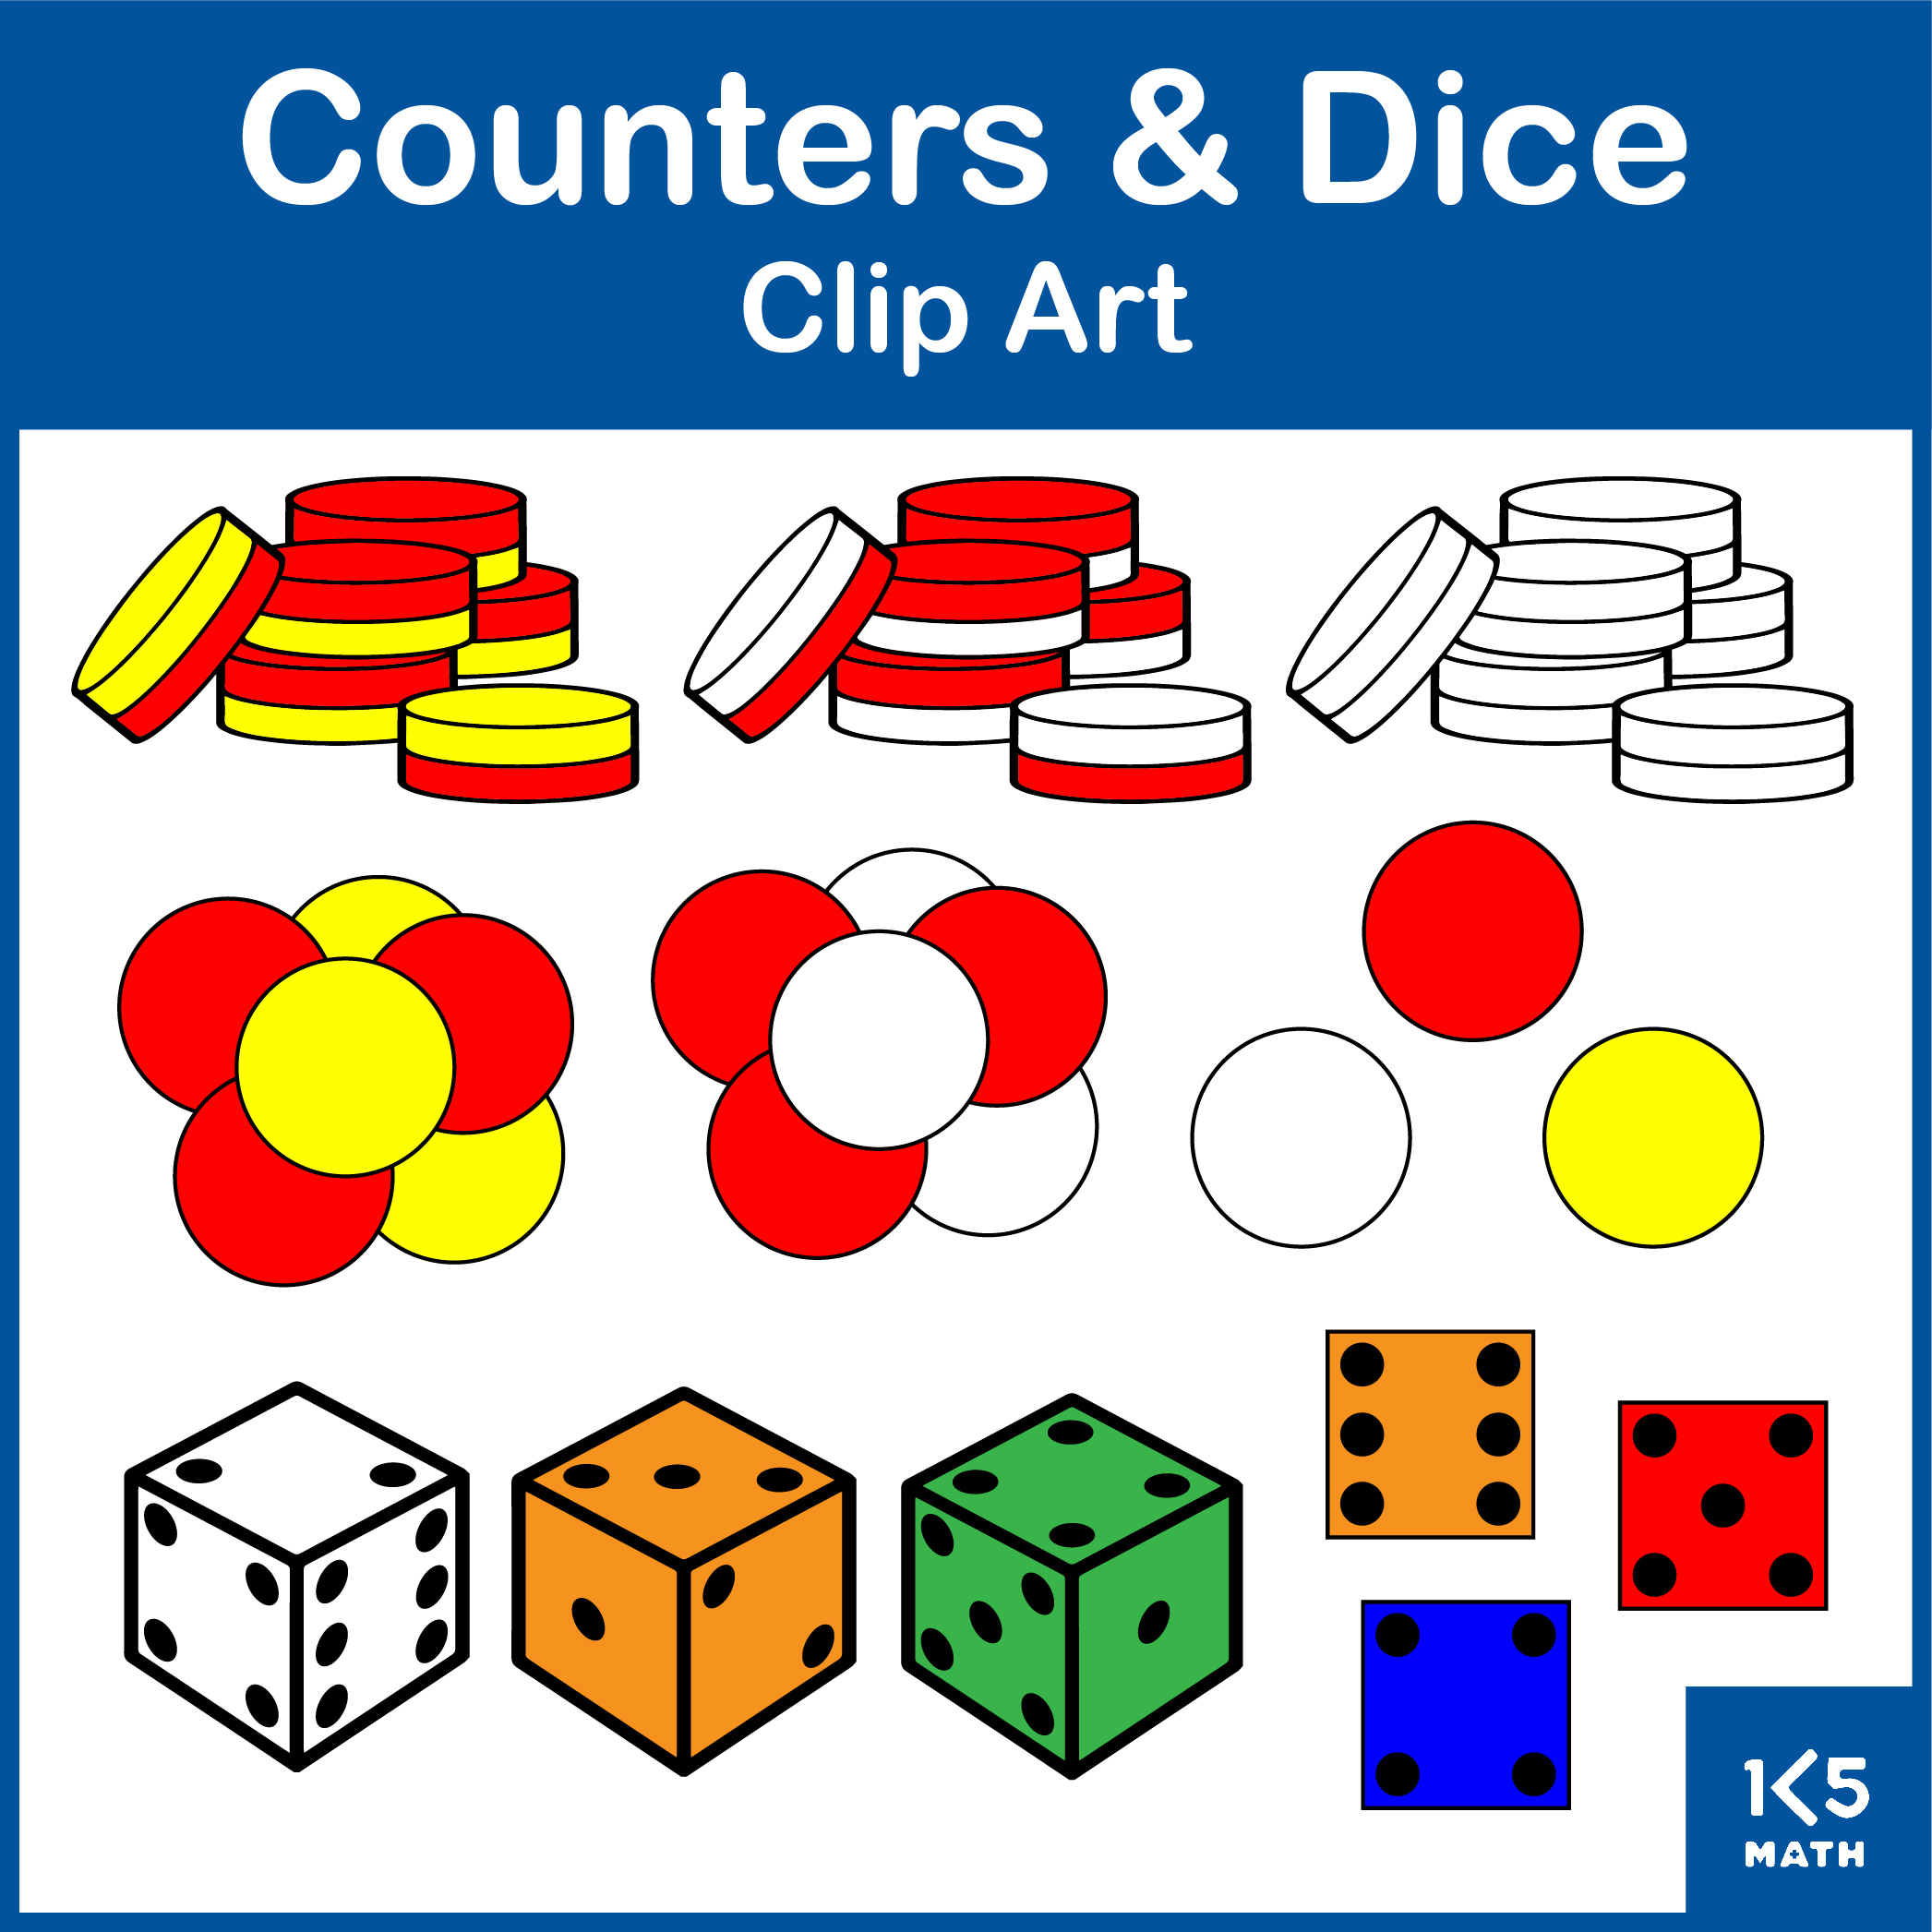 Counters and Dice Clip Art